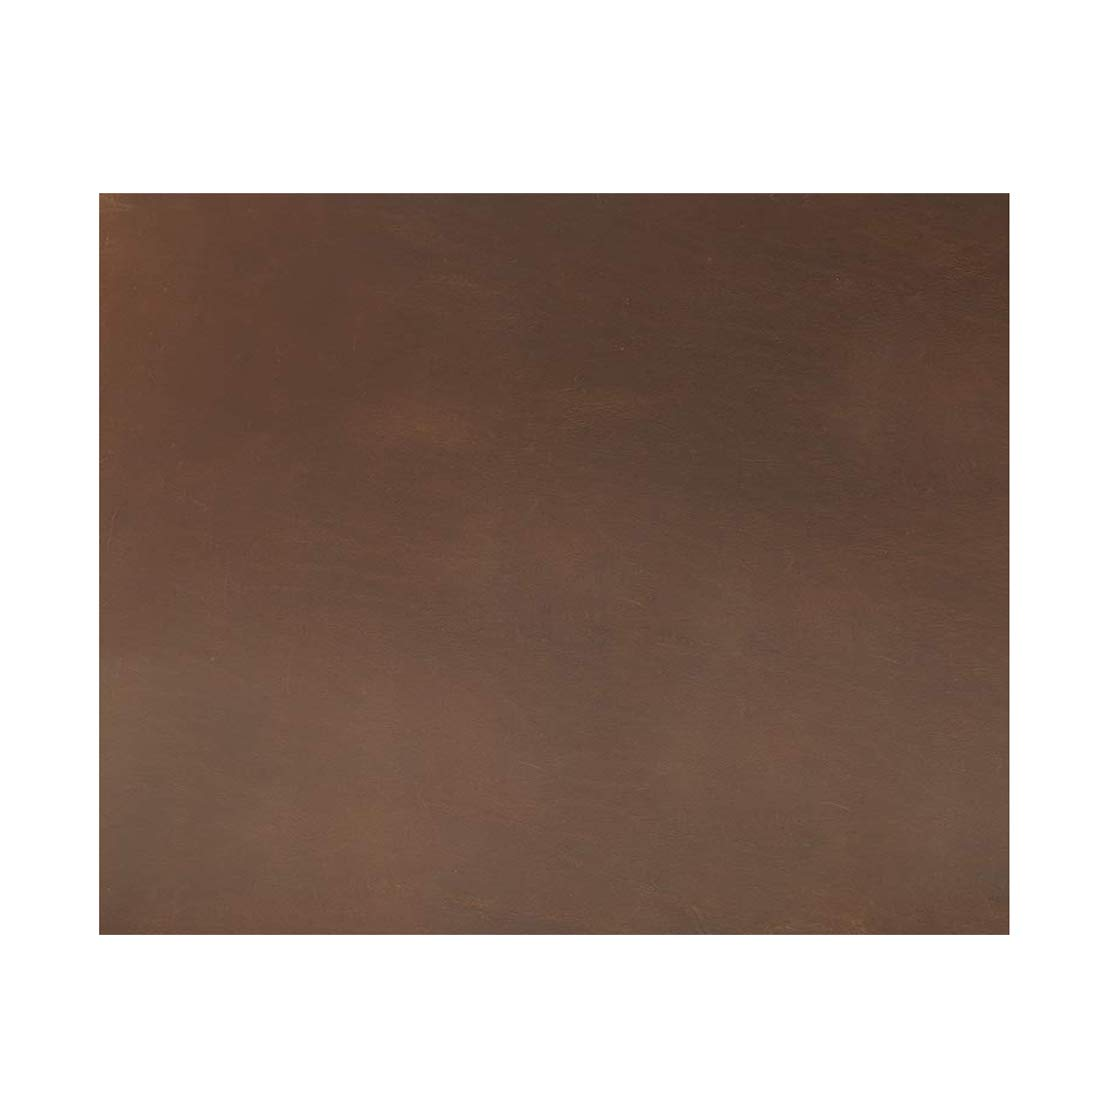 Hide & Drink, Thick Leather Square (16 x 18 in.) for Crafts/Tooling/Hobby Workshop, Heavy Weight (3.5mm) :: Bourbon Brown